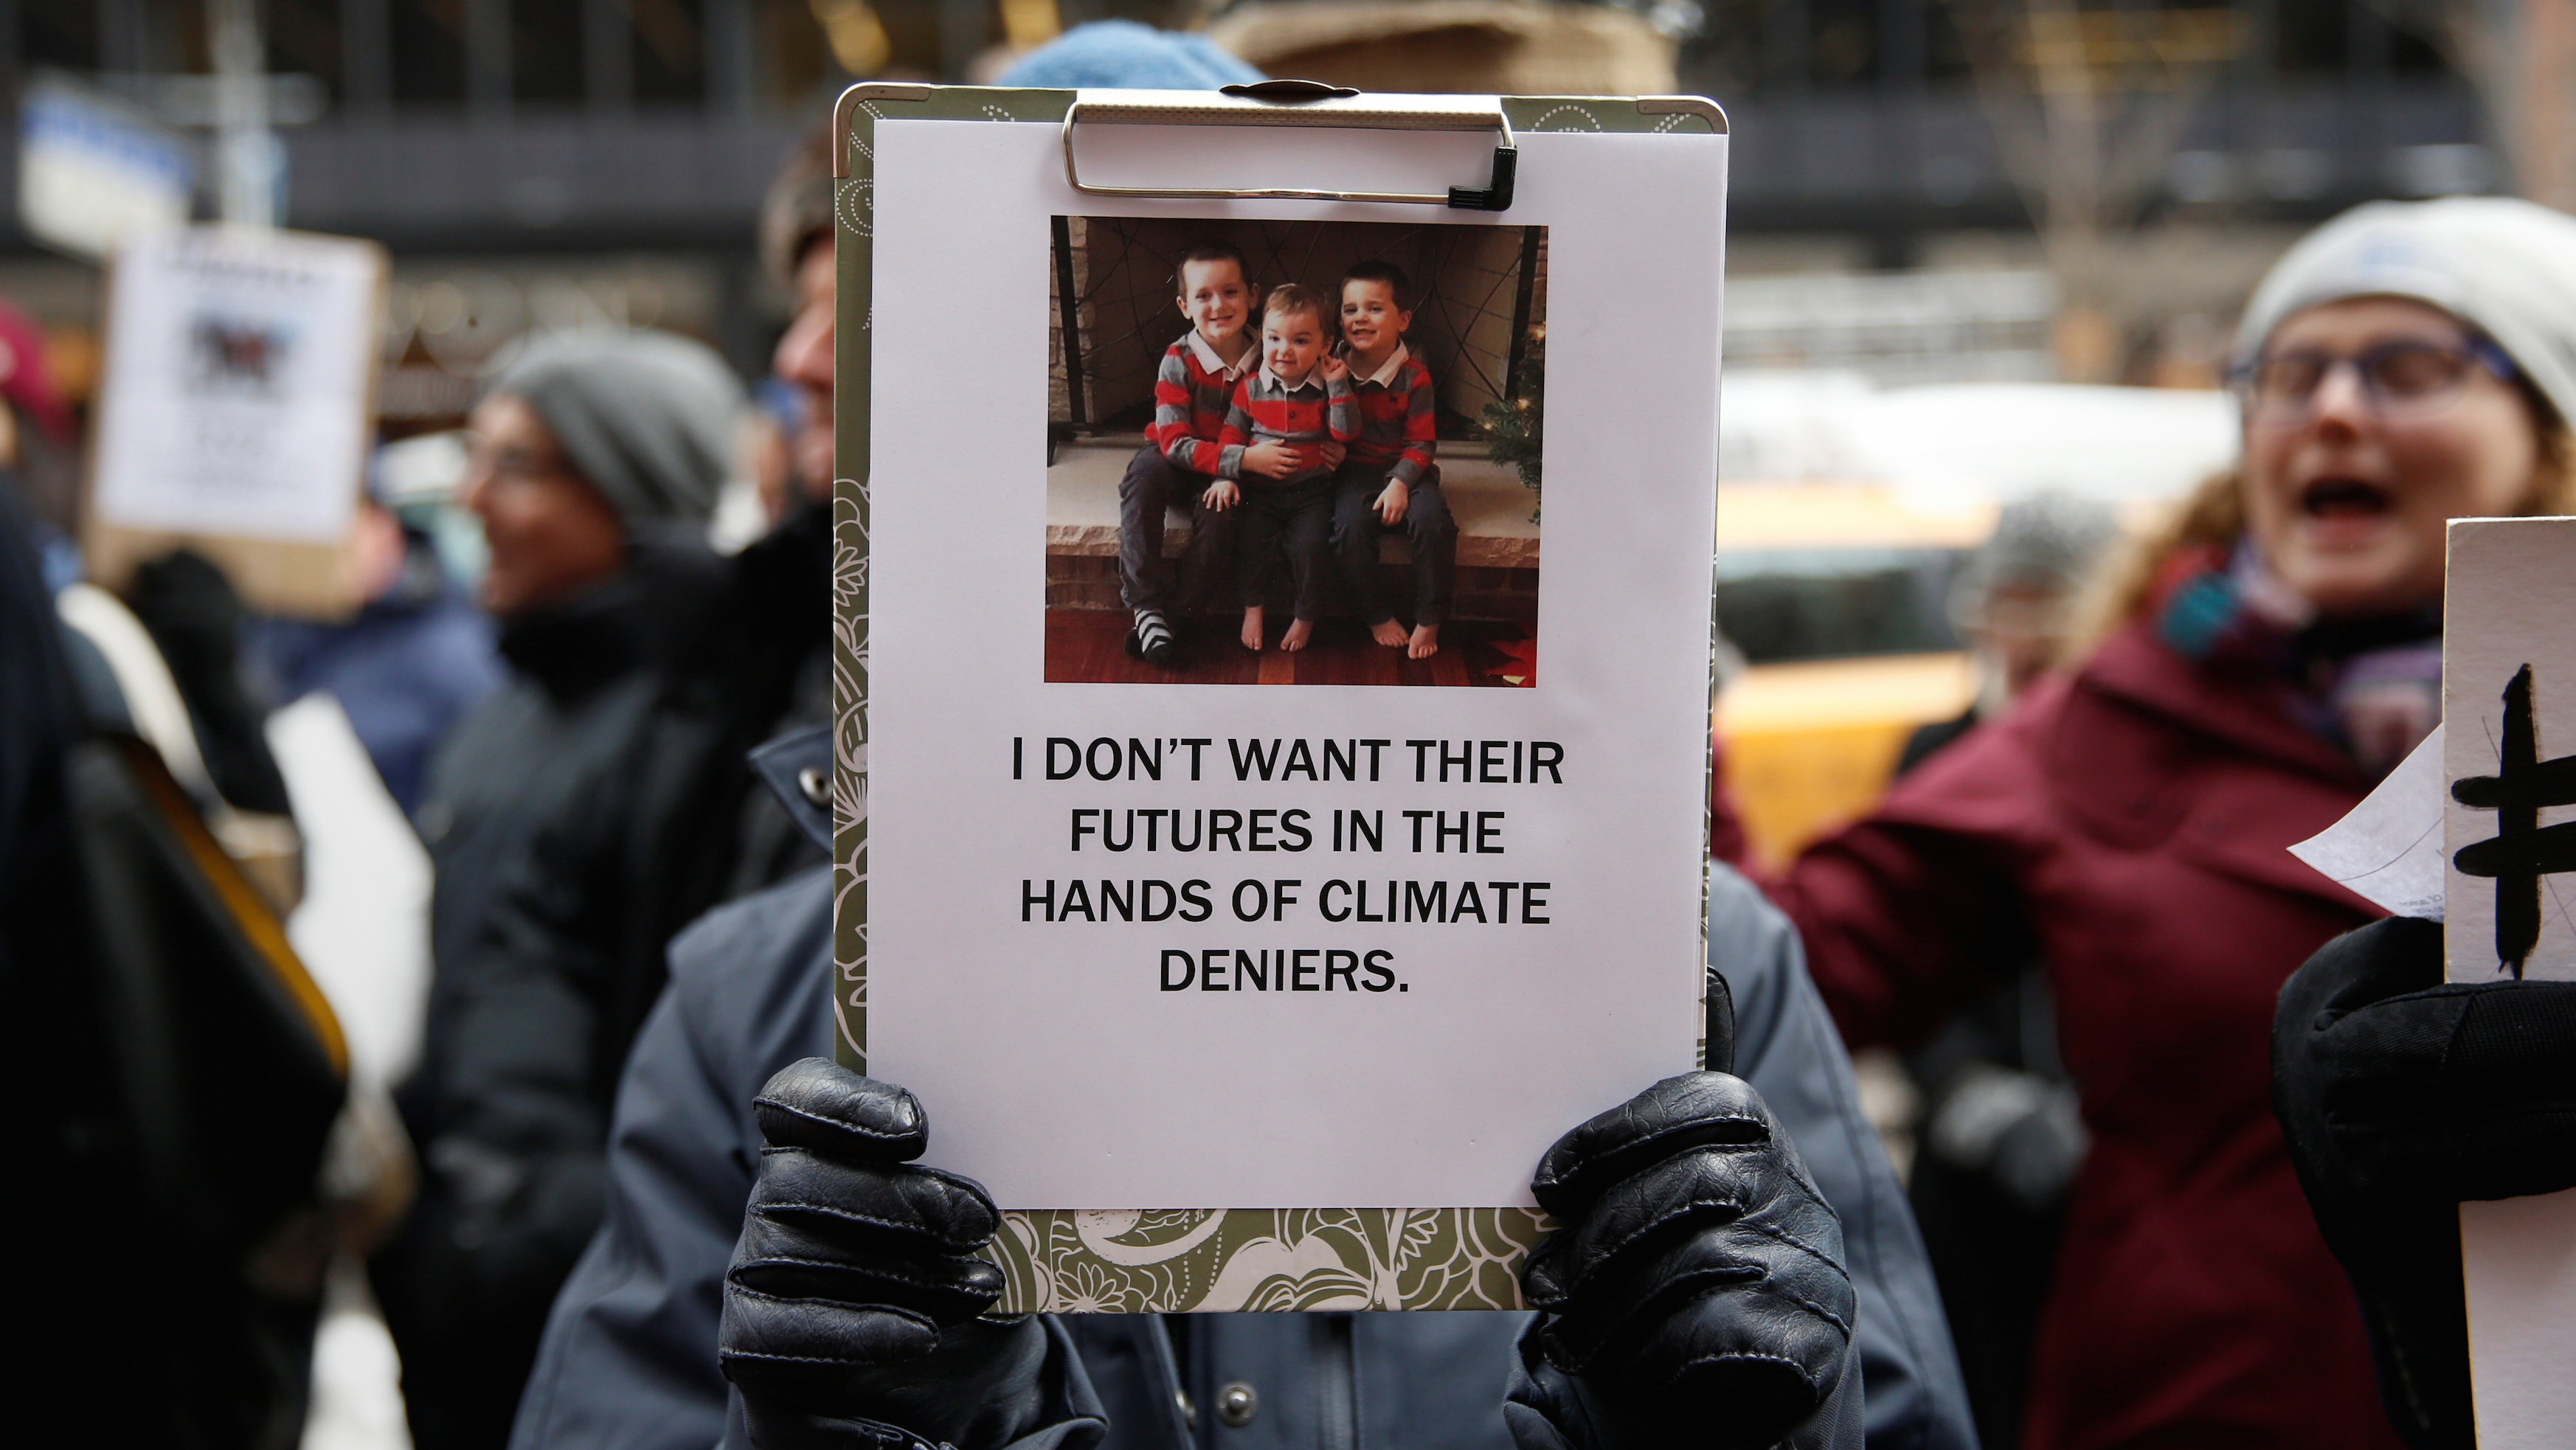 Demonstrators gather protesting climate change outside the office of U.S. Senator Charles Schumer (D-NY) in New York, U.S., January 9, 2017.